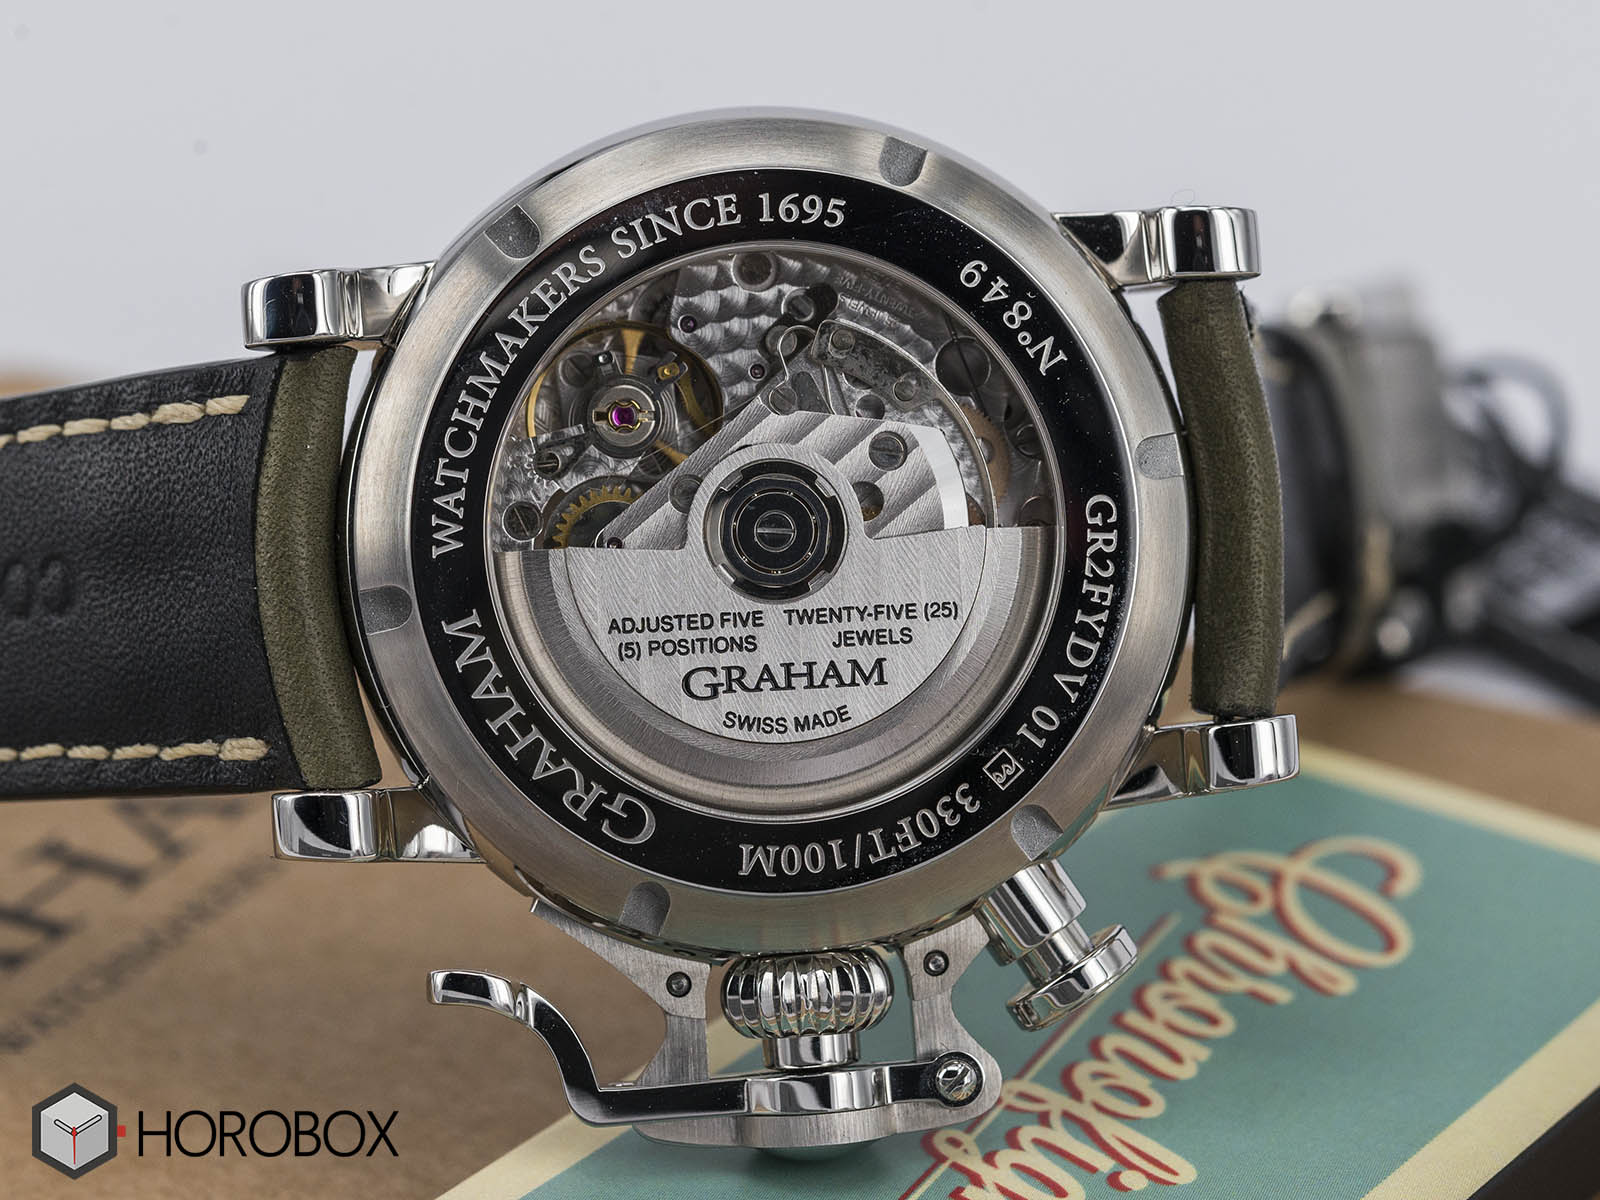 graham-chronofighter-vintage-nose-art-ltd-5.jpg